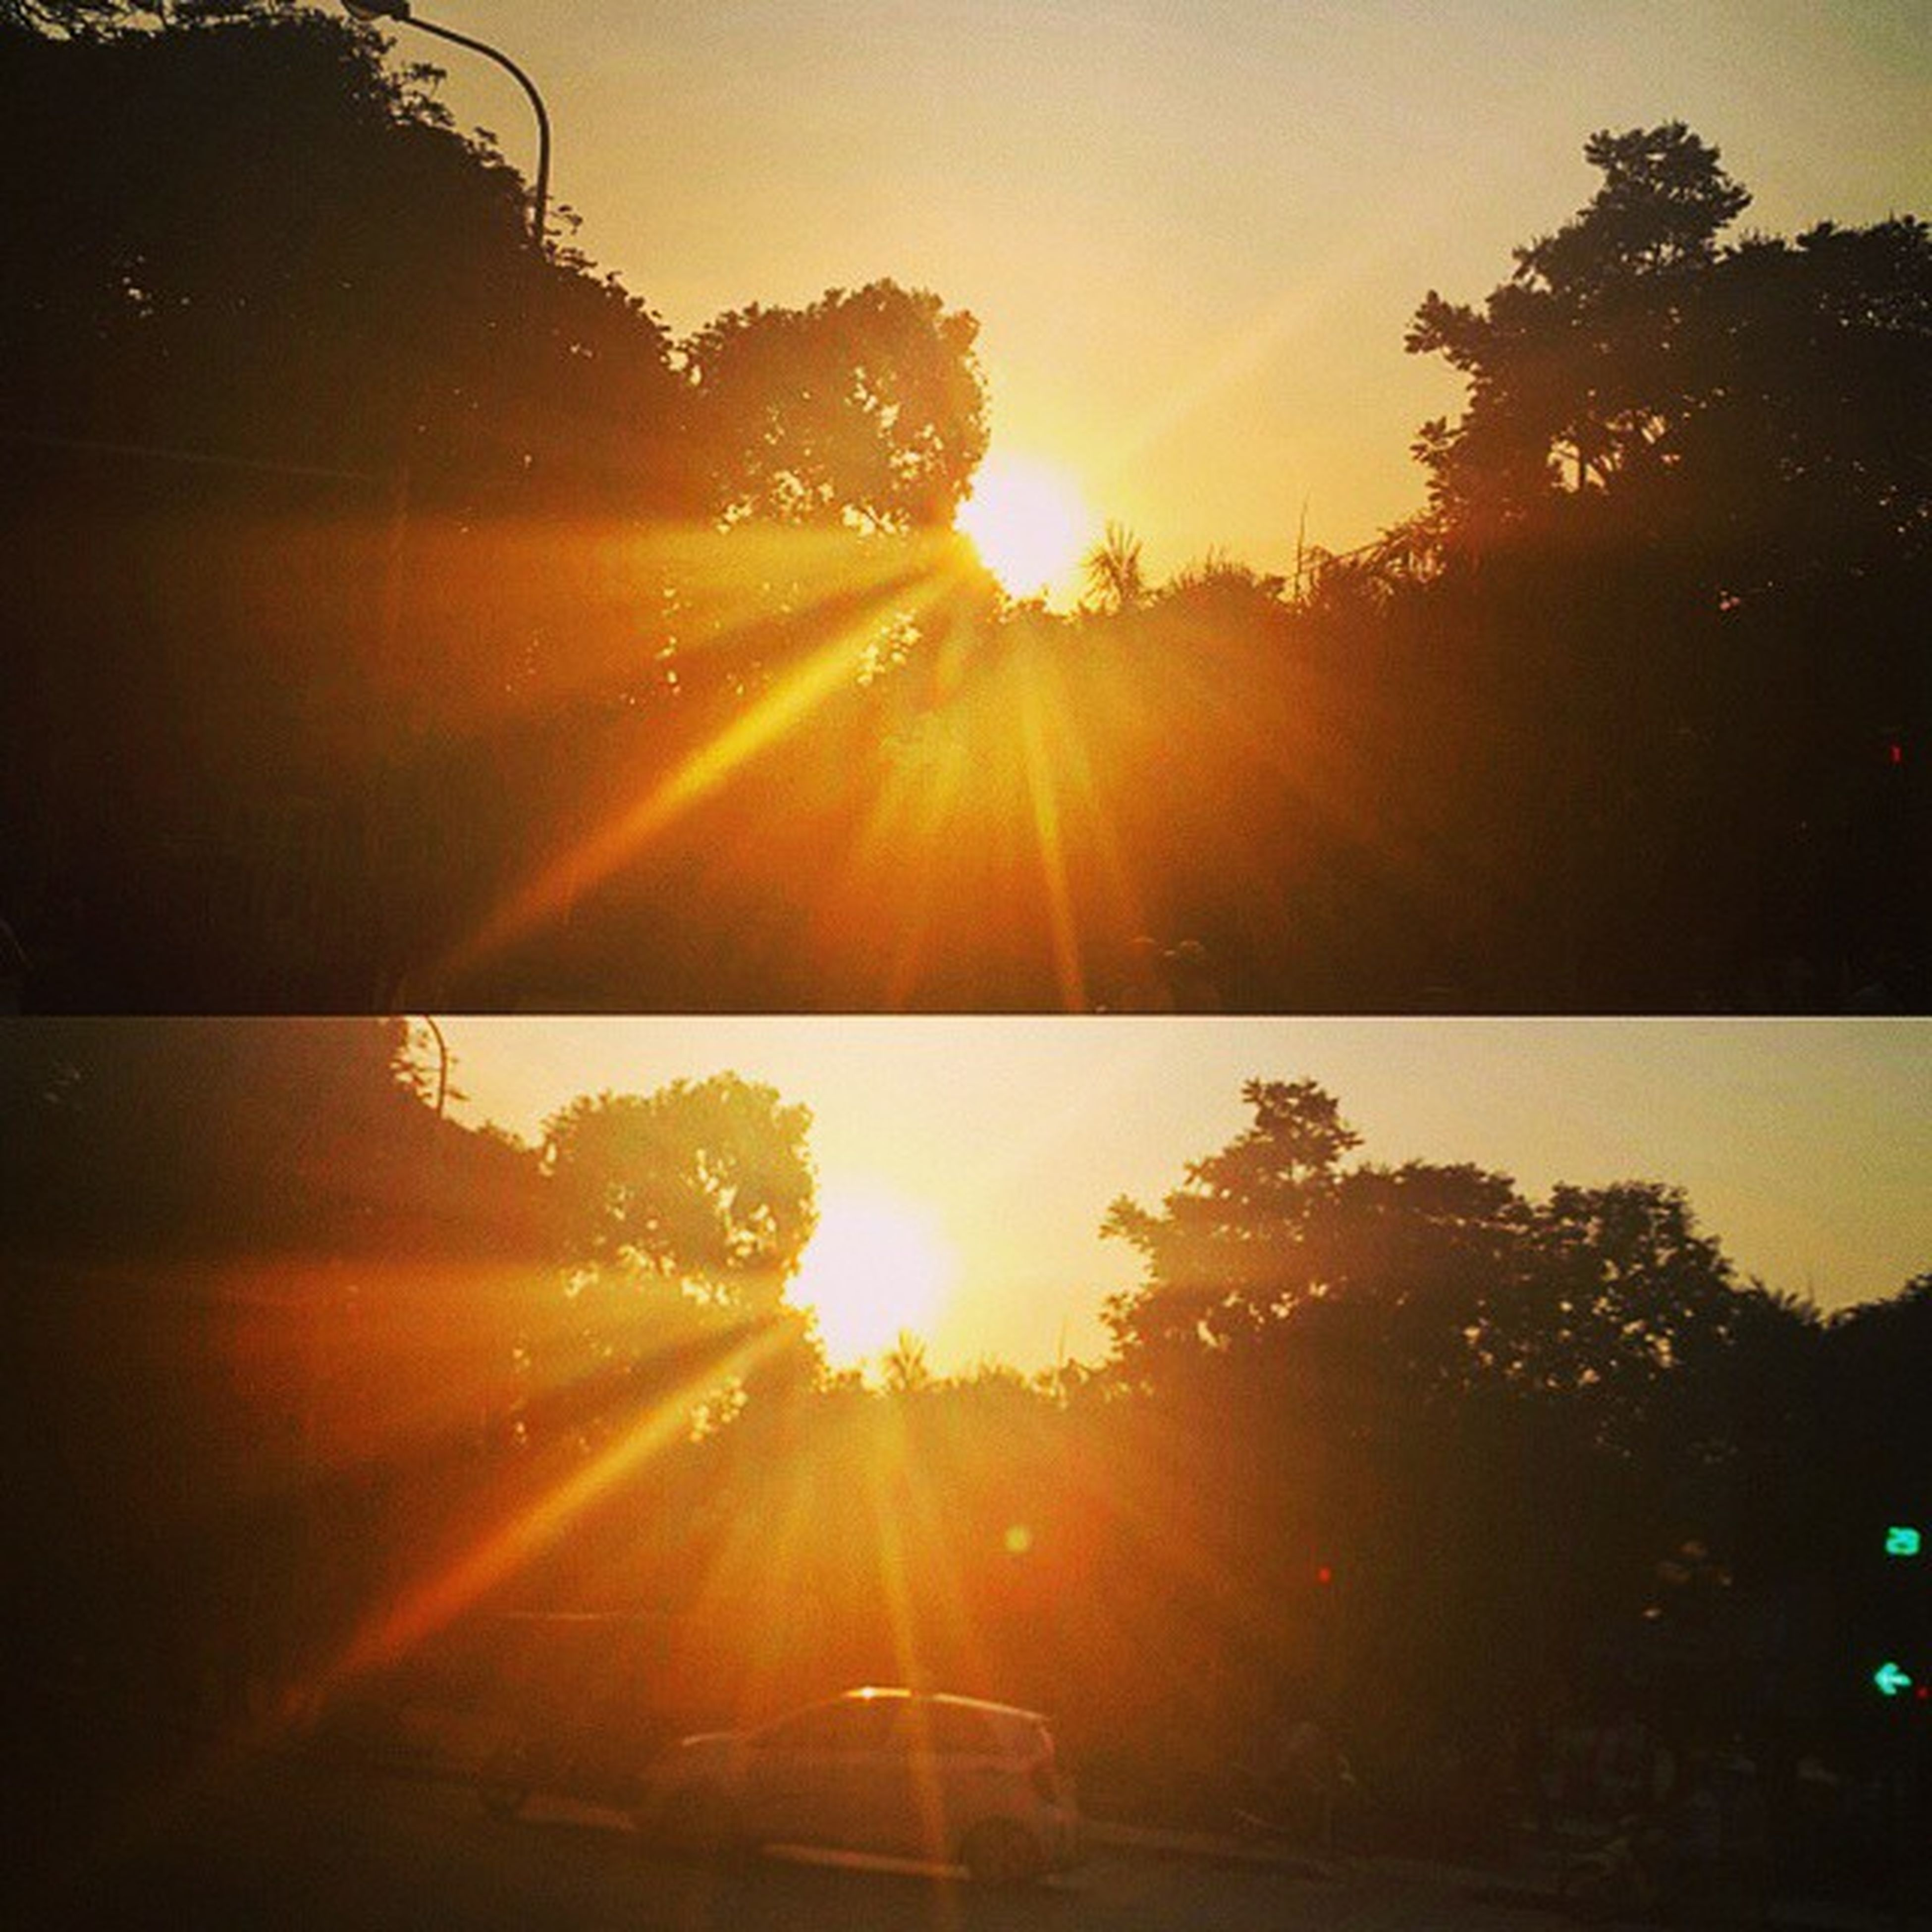 sun, sunset, sunbeam, sunlight, lens flare, tree, transportation, orange color, silhouette, bright, tranquility, sky, nature, beauty in nature, scenics, tranquil scene, car, back lit, road, no people